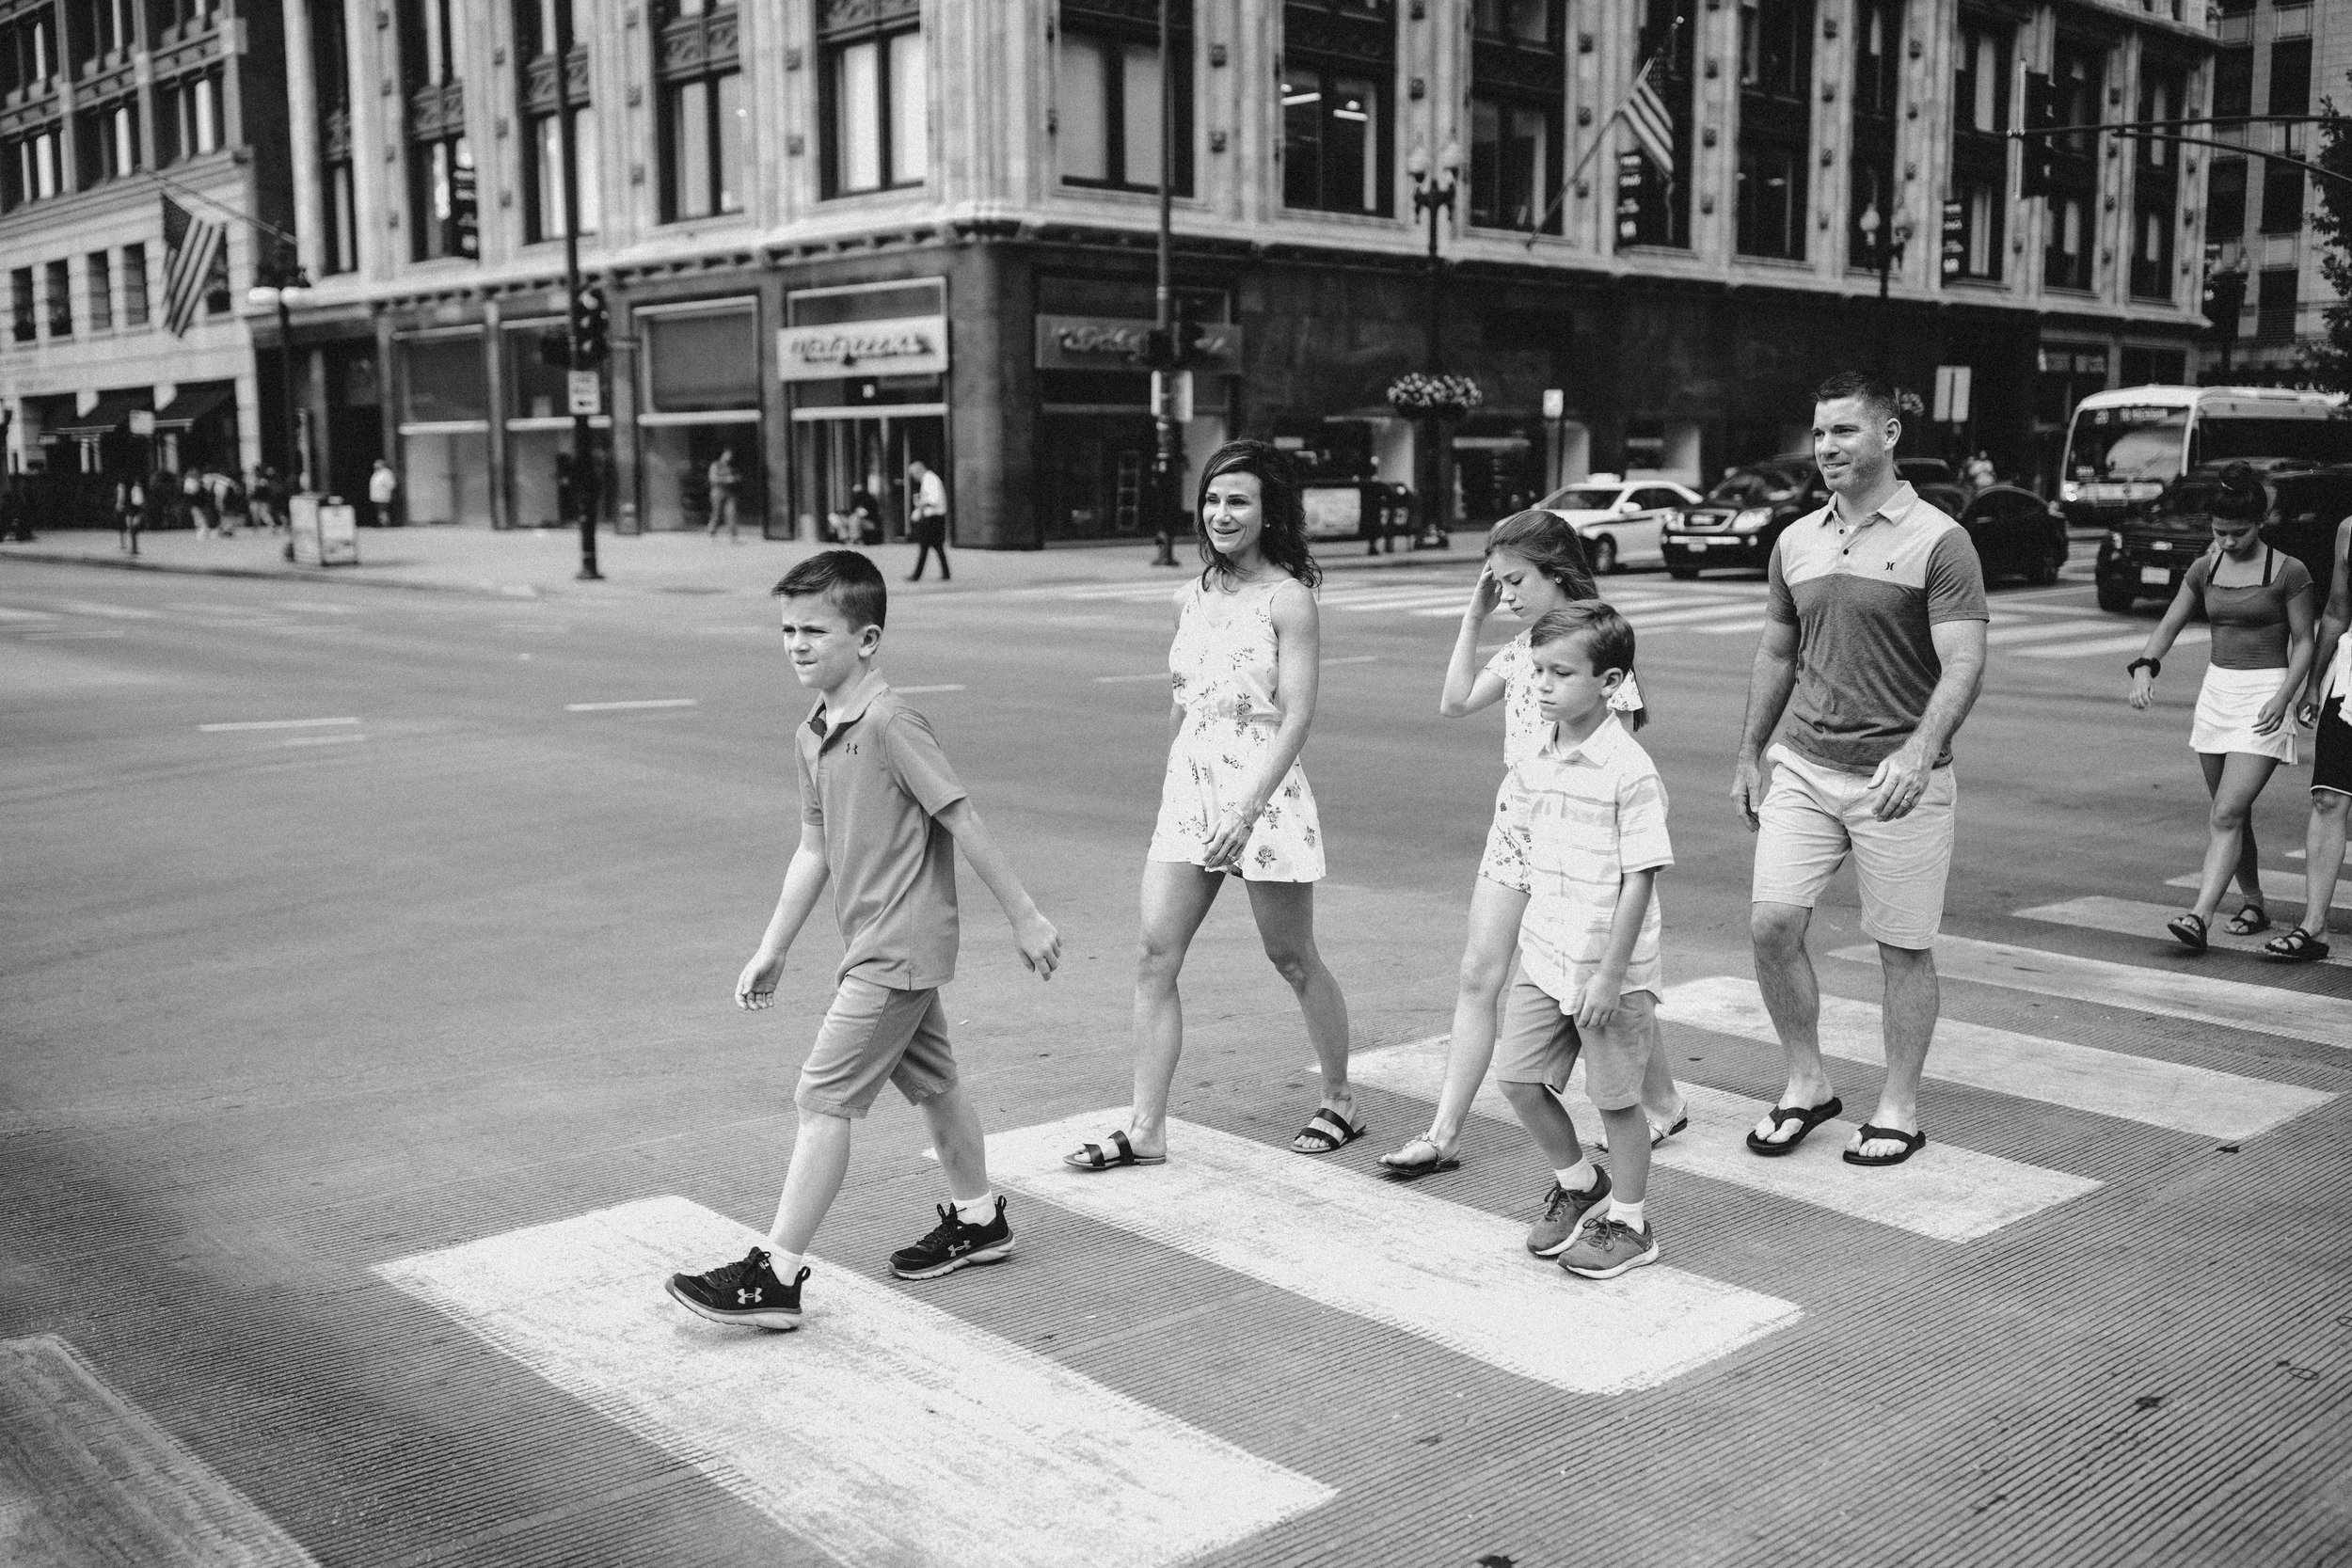 Reeves_Family_vacation_Downtown_Chicago_81219-36.jpg